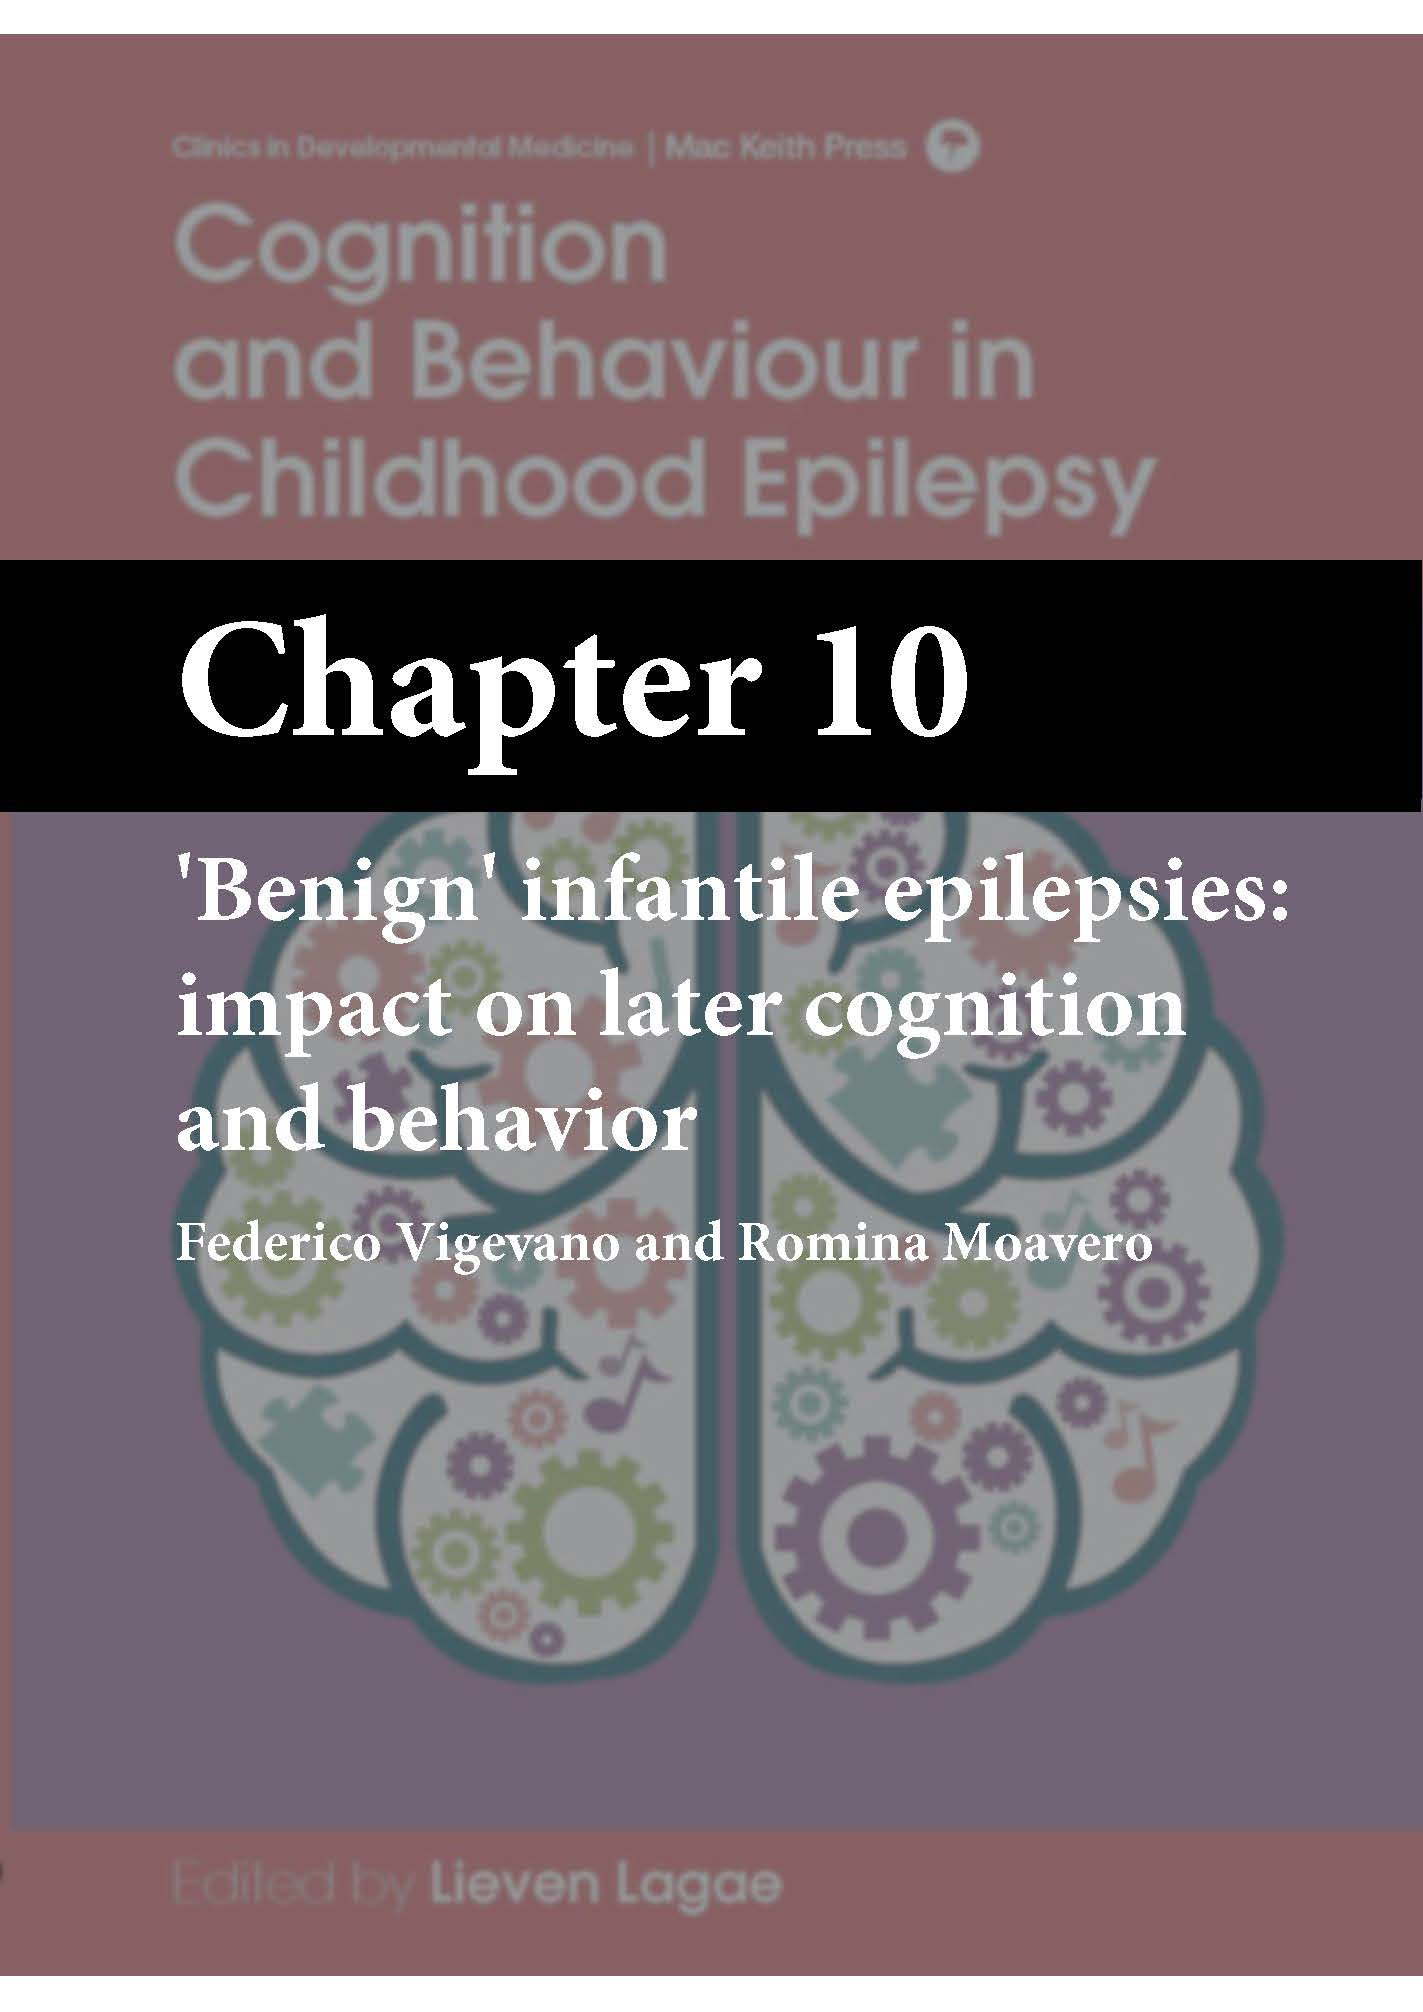 Cognition and Behaviour in Childhood Epilepsy, Lagae, Chapter 10 cover